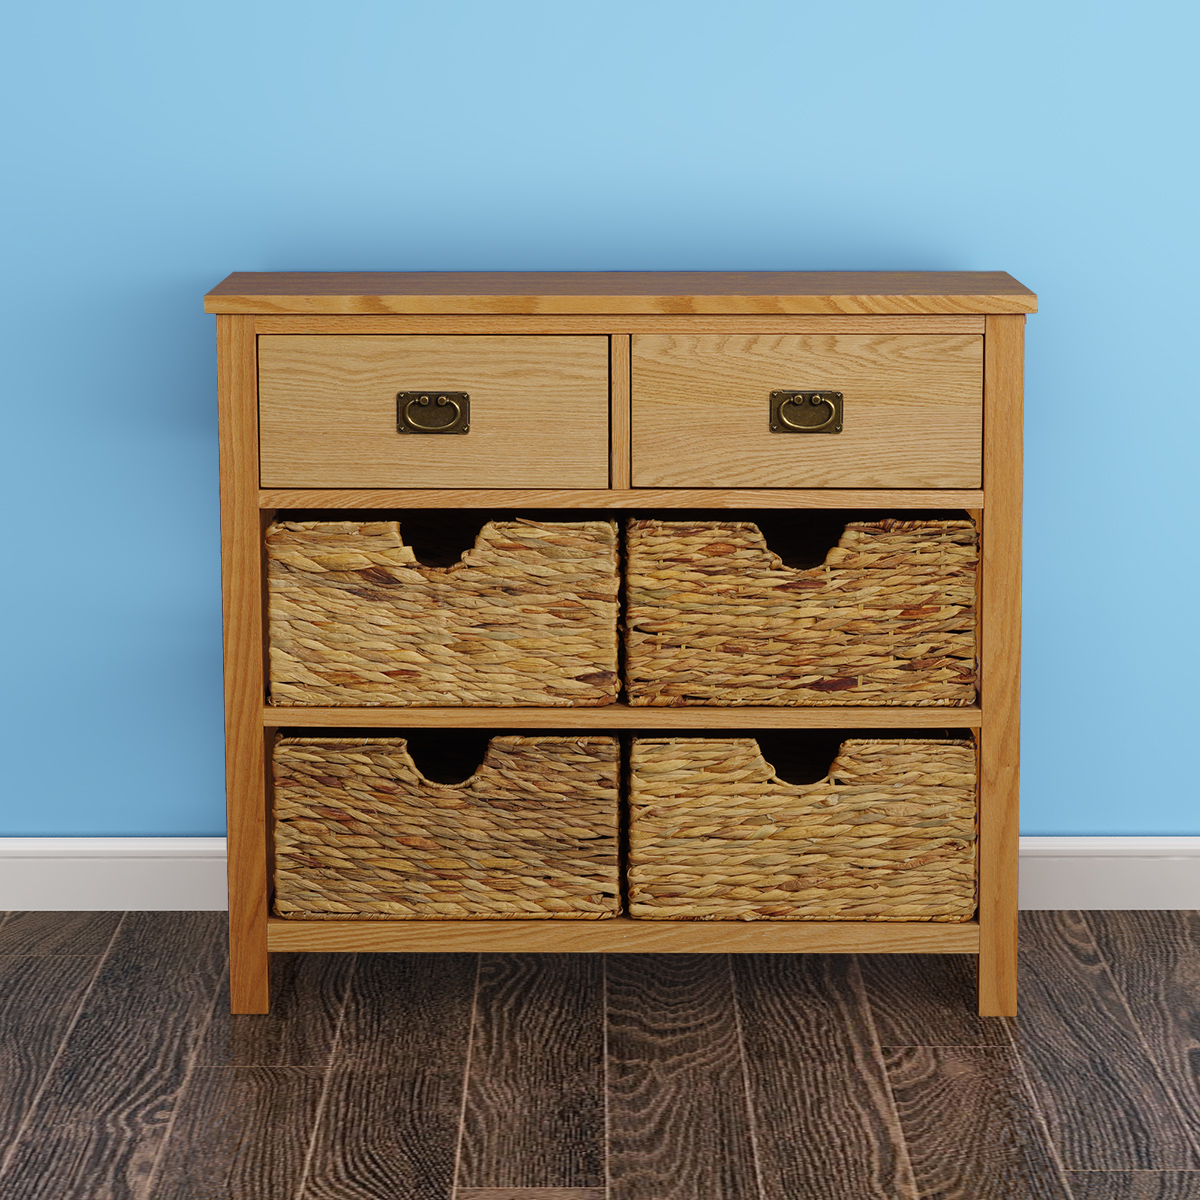 Oak Sideboard Cabinet Chest Drawers Cupboards Storage Baskets